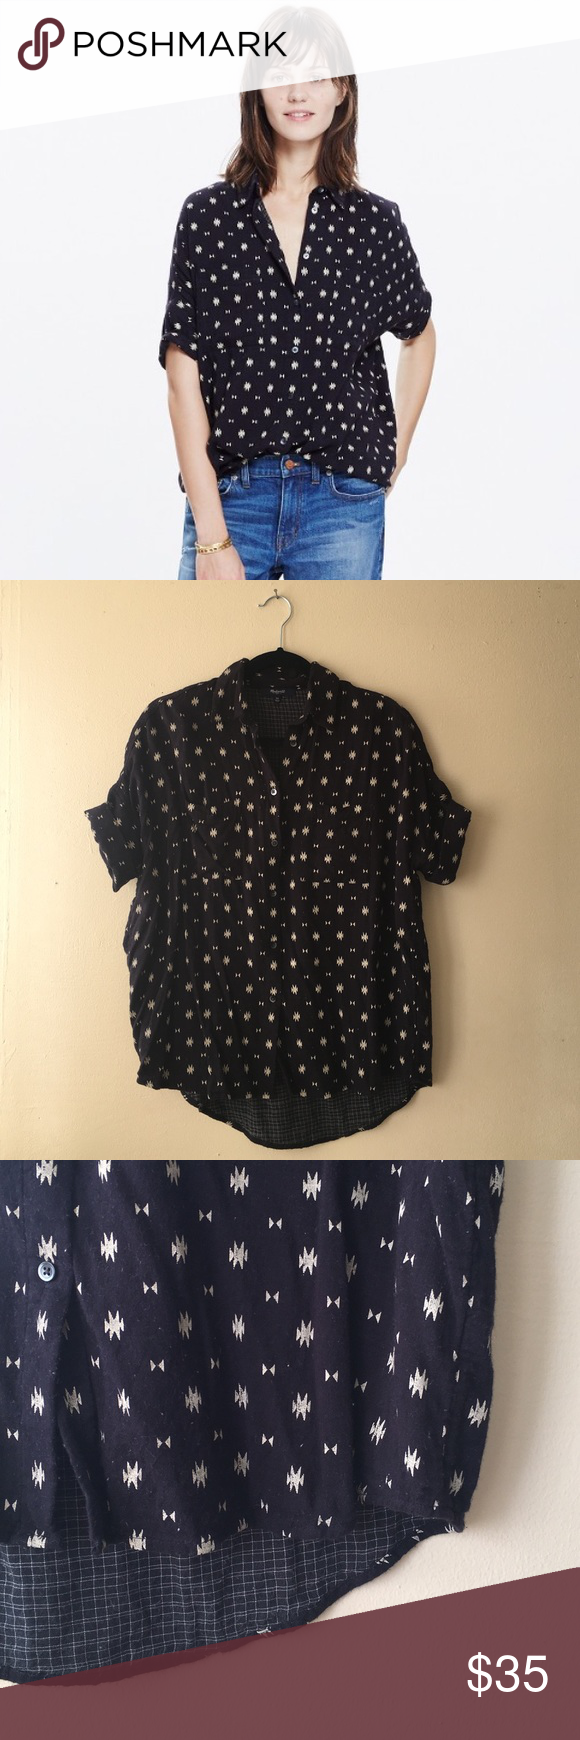 Madewell Courier Shirt in Orsa Print The perfect oversized, slightly boxy shaped shirt. Made with a special double-faced fabric (one side is a geometric print, the other a subtle plaid).  *worn 1-3 times*  - Slightly oversized fit. - Cotton. Madewell Tops Button Down Shirts